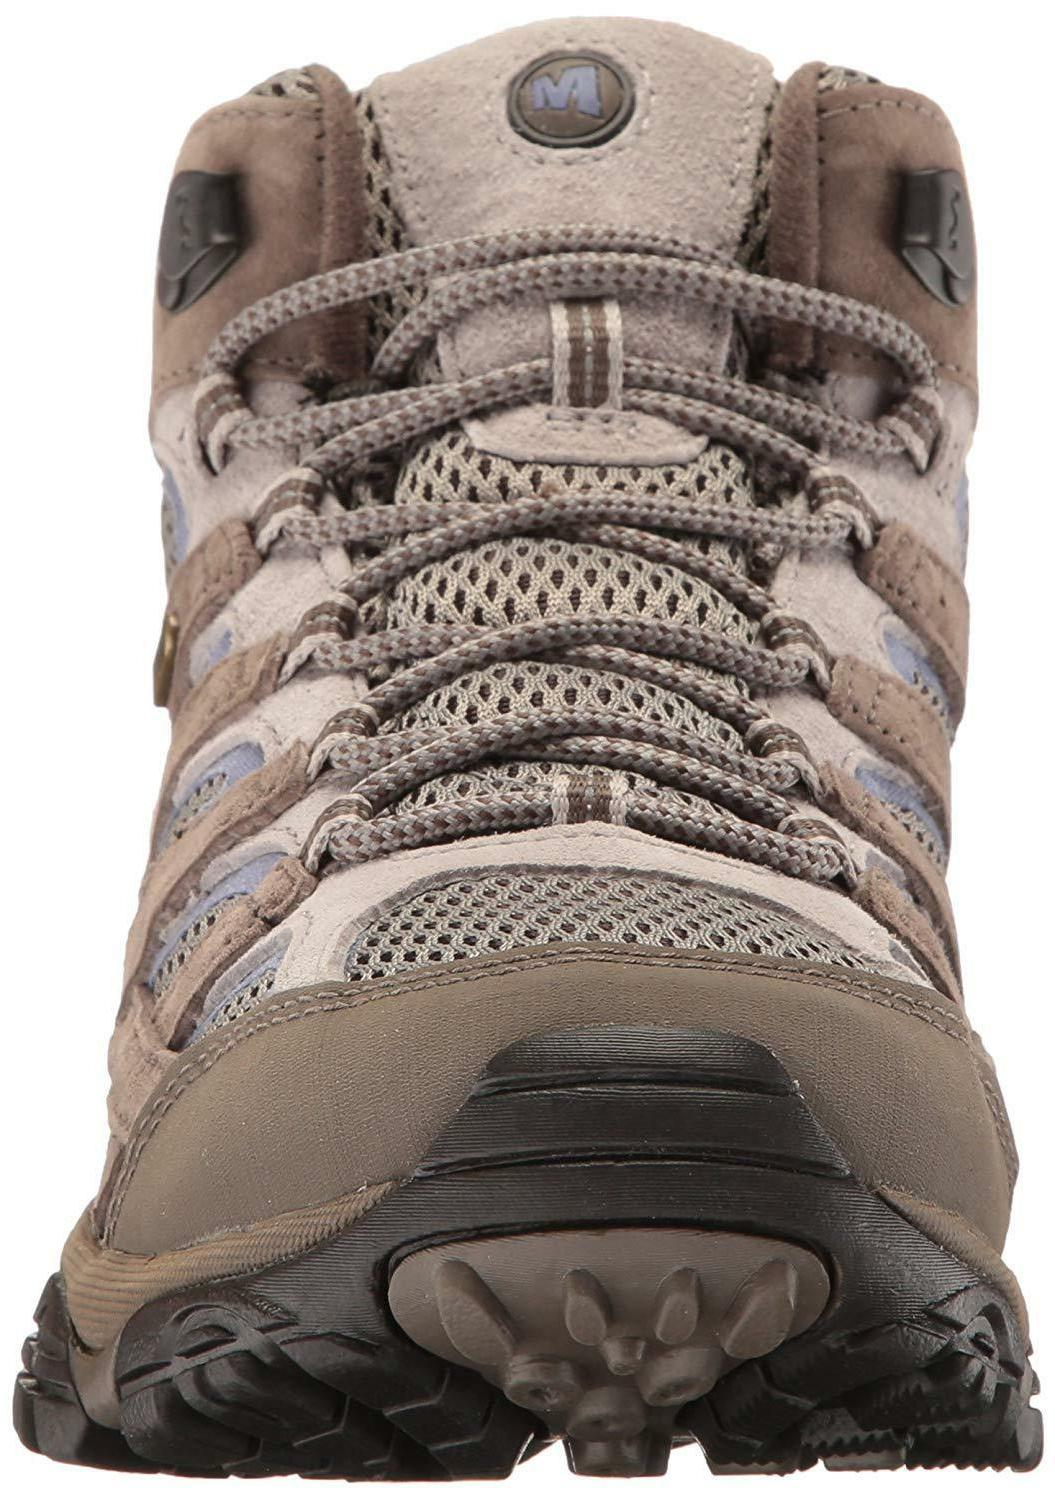 Merrell Women's 2 Mid Waterproof Hiking